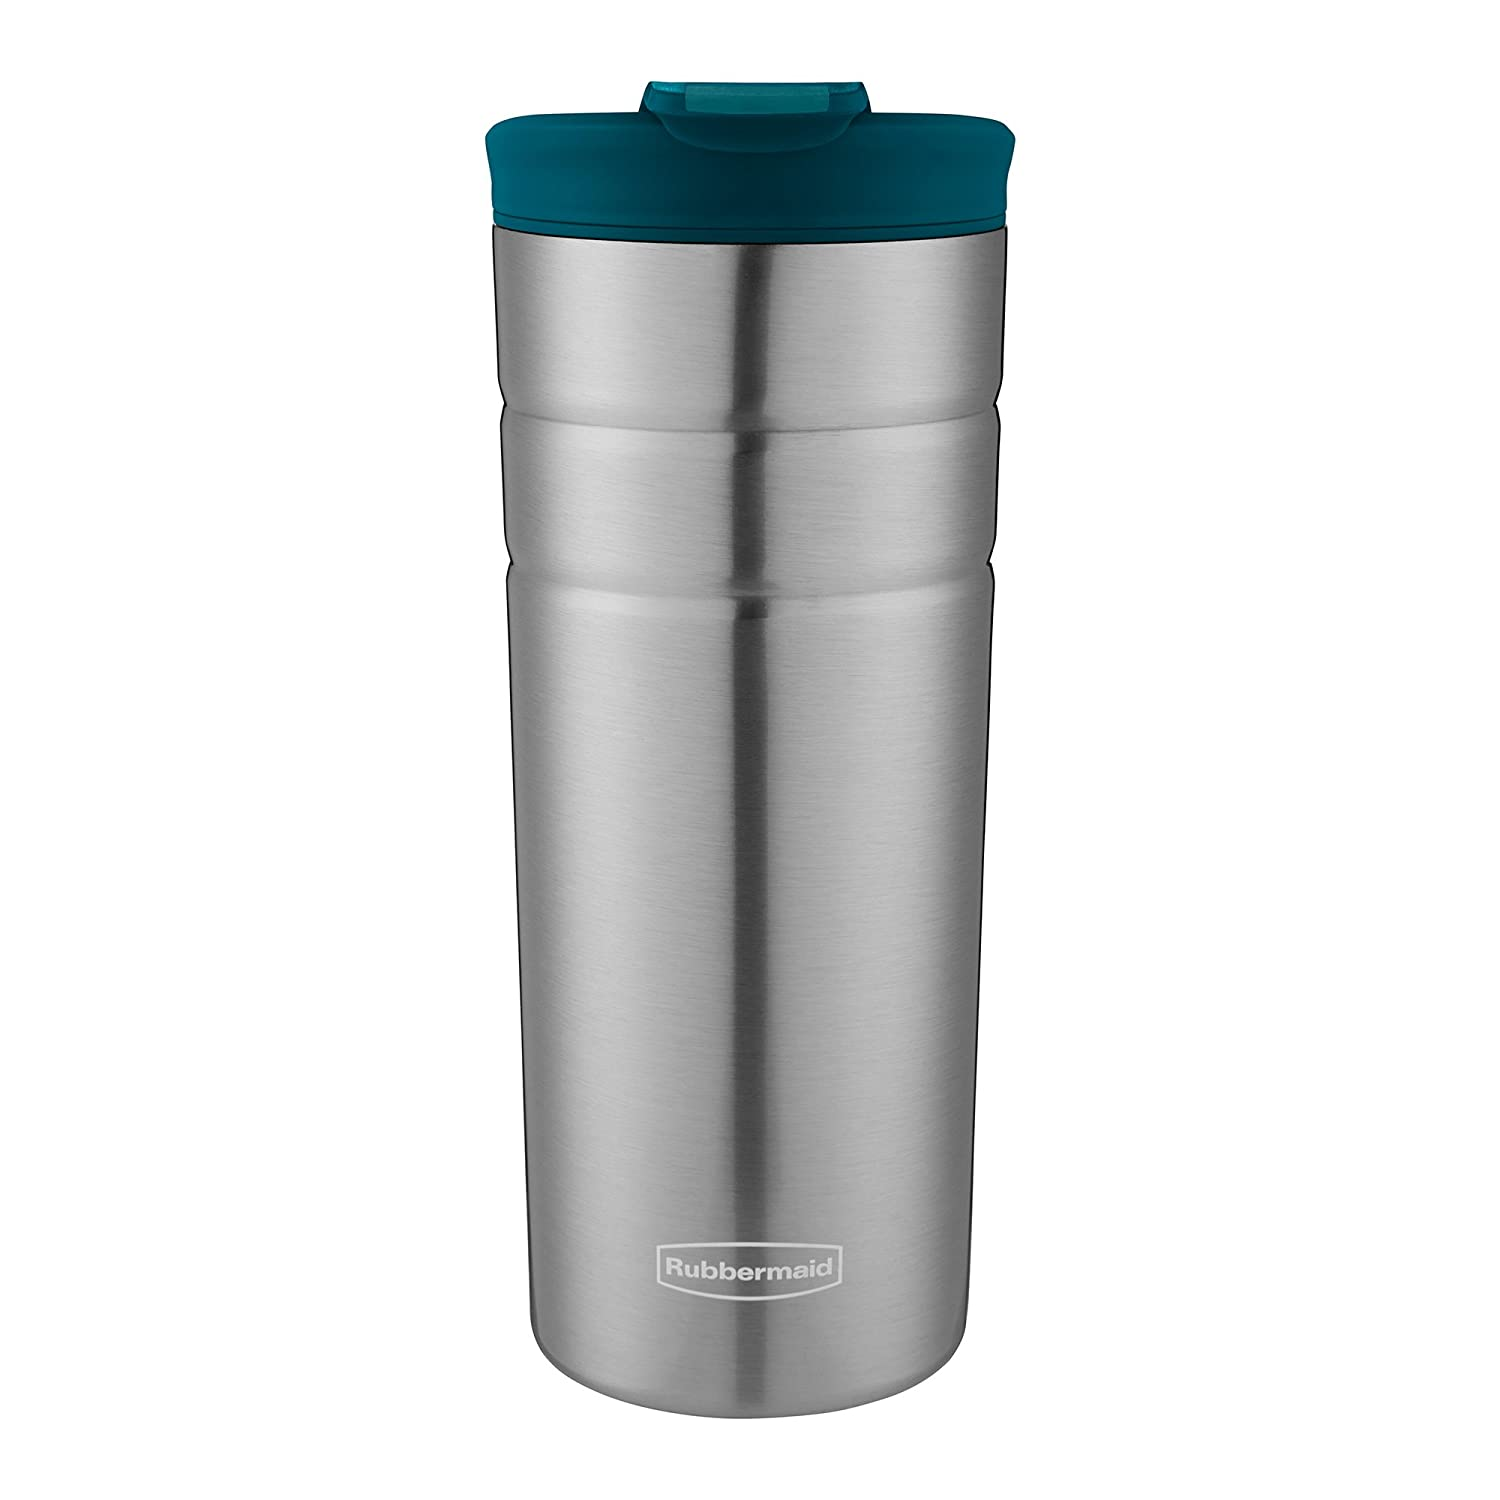 Rubbermaid Leak Proof Flip Lid Thermal Bottle, 16 oz., Lagoon